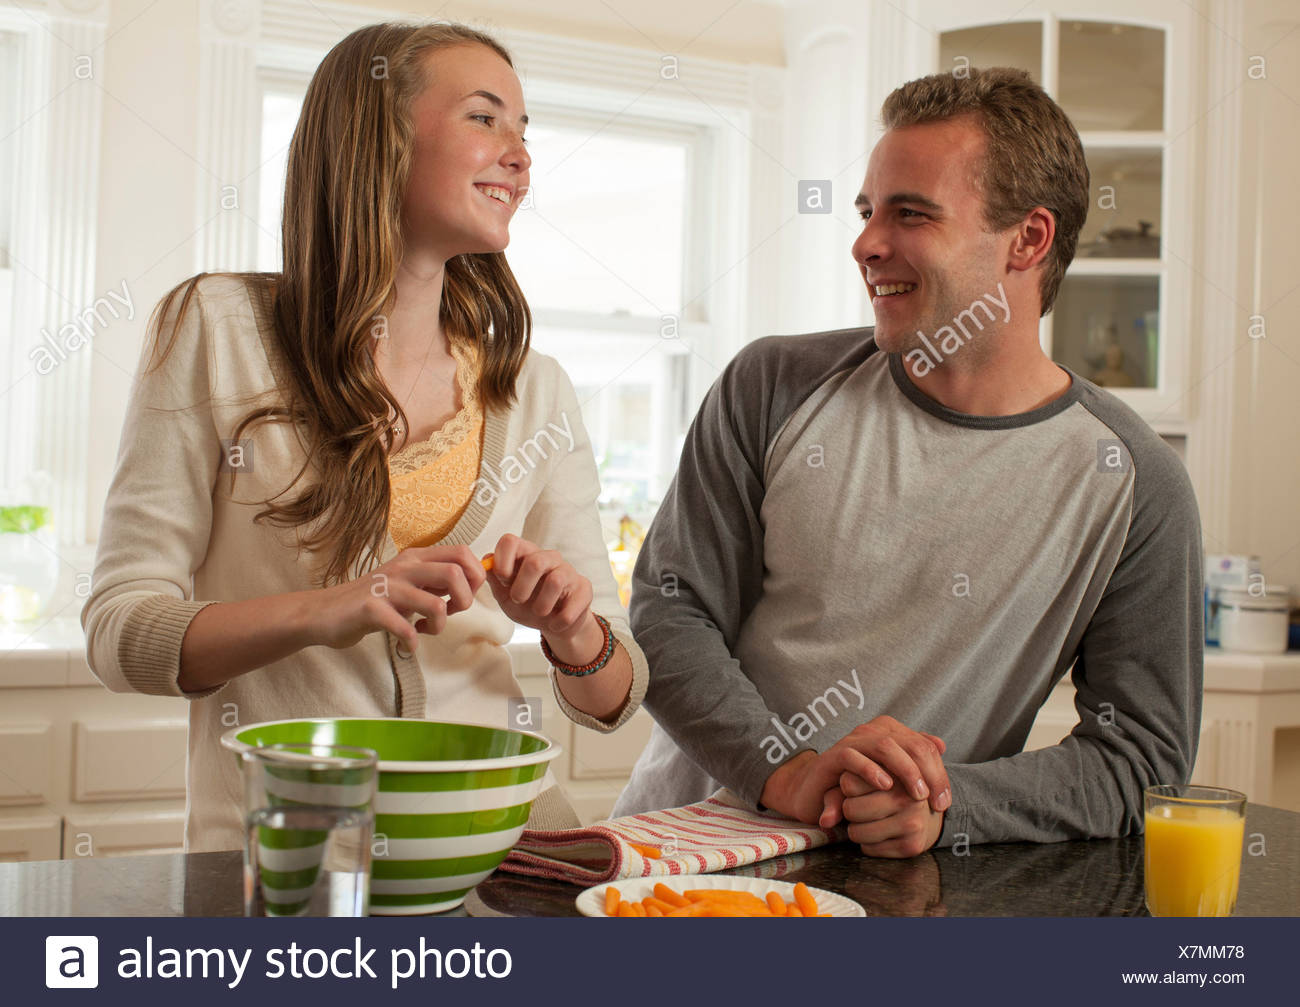 Brother and sister preparing food - Stock Image